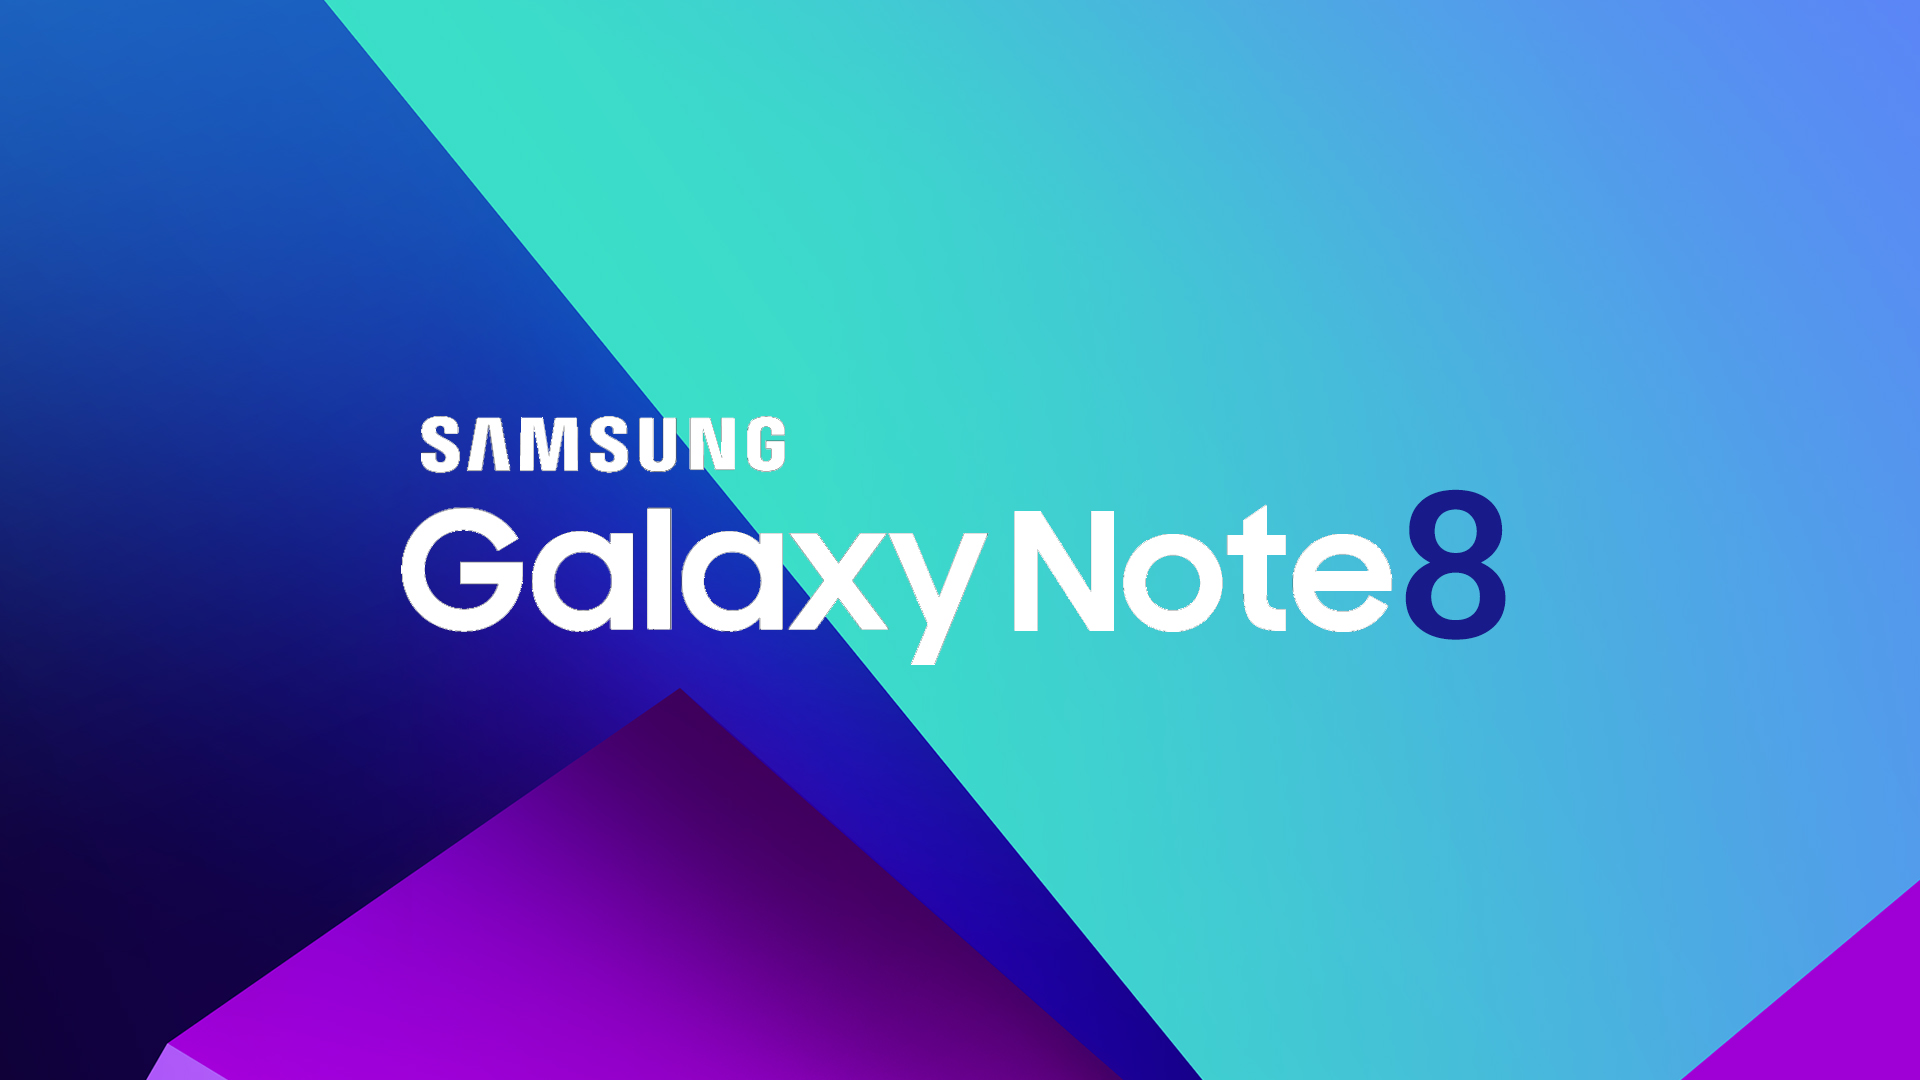 Samsung Galaxy Note 8 set to launch in late August